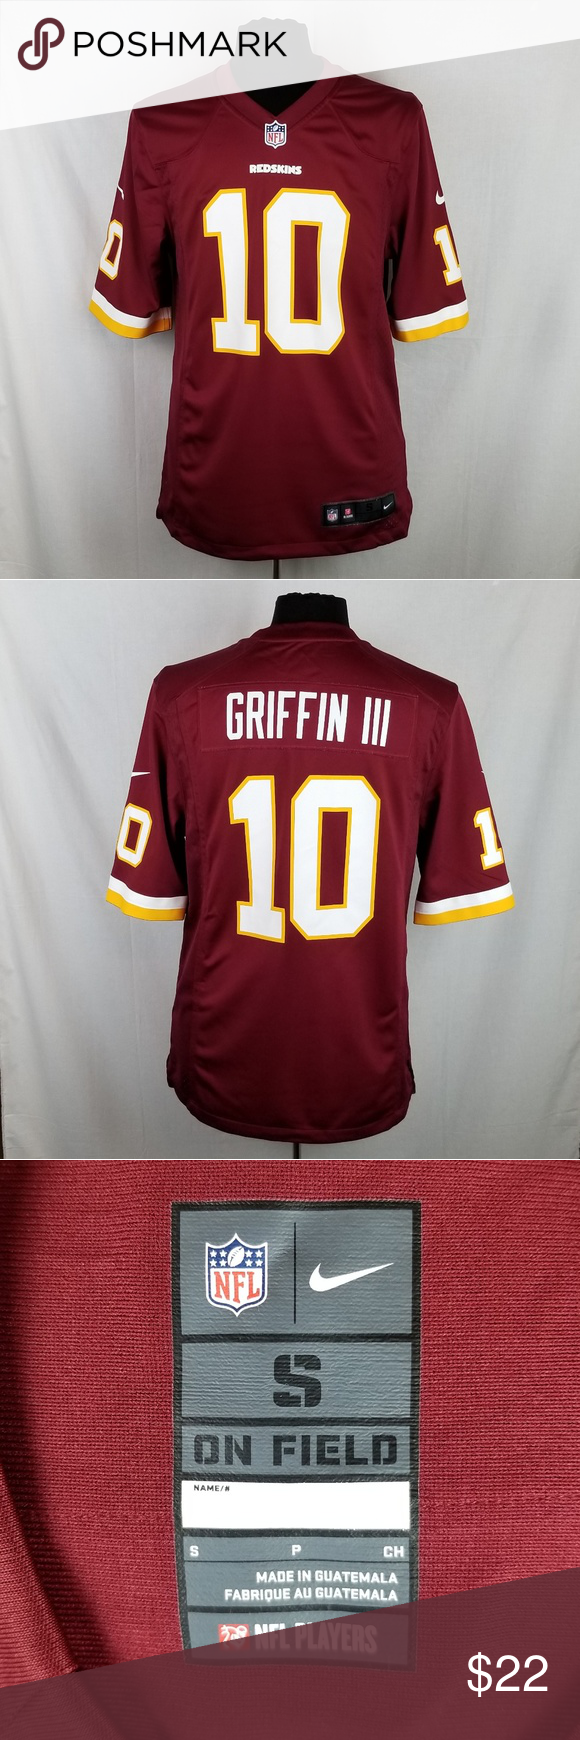 innovative design 97168 b4bd7 Nike On Field RG3 Jersey Men's S Robert Griffin 3 Washington ...